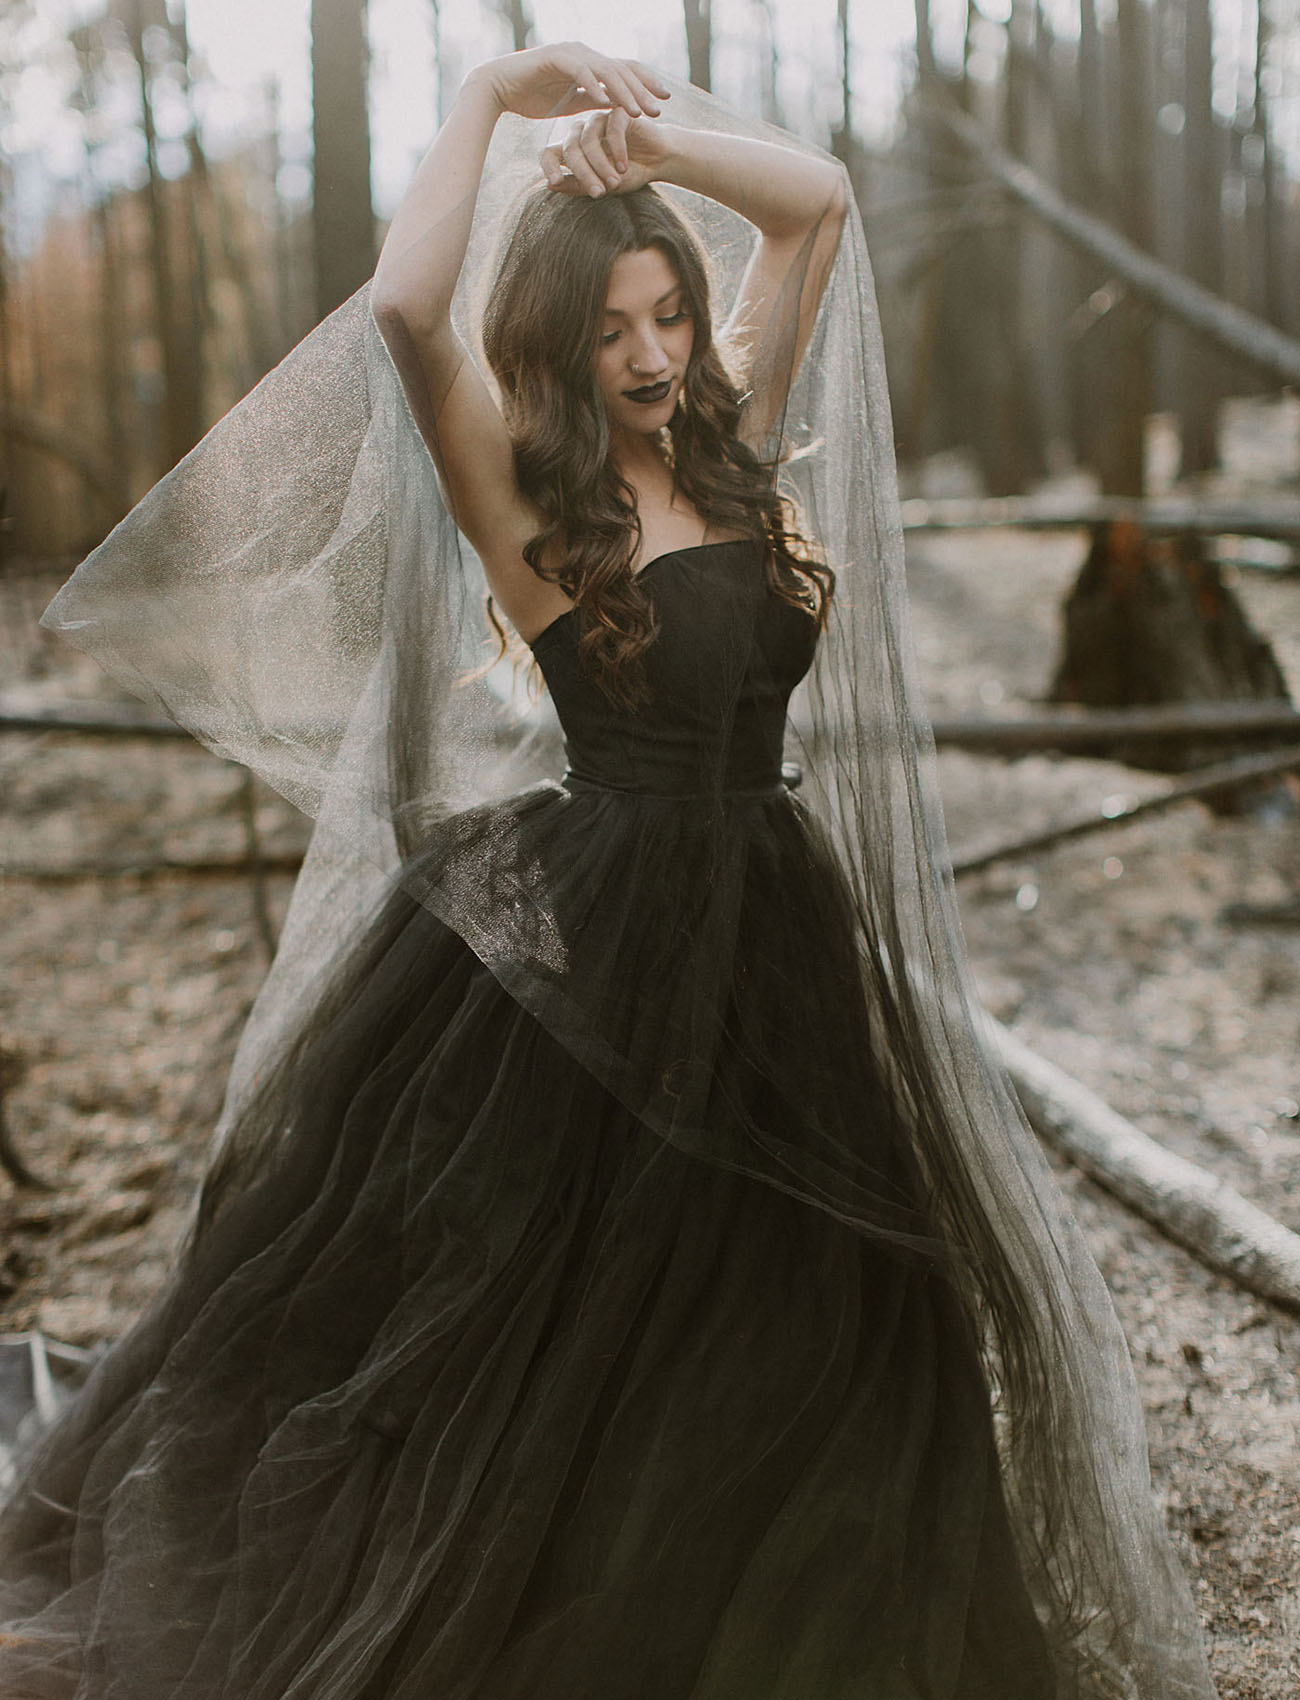 b8d681131c Paint It Black... Our Favorite Black Wedding Dresses! - Green ...